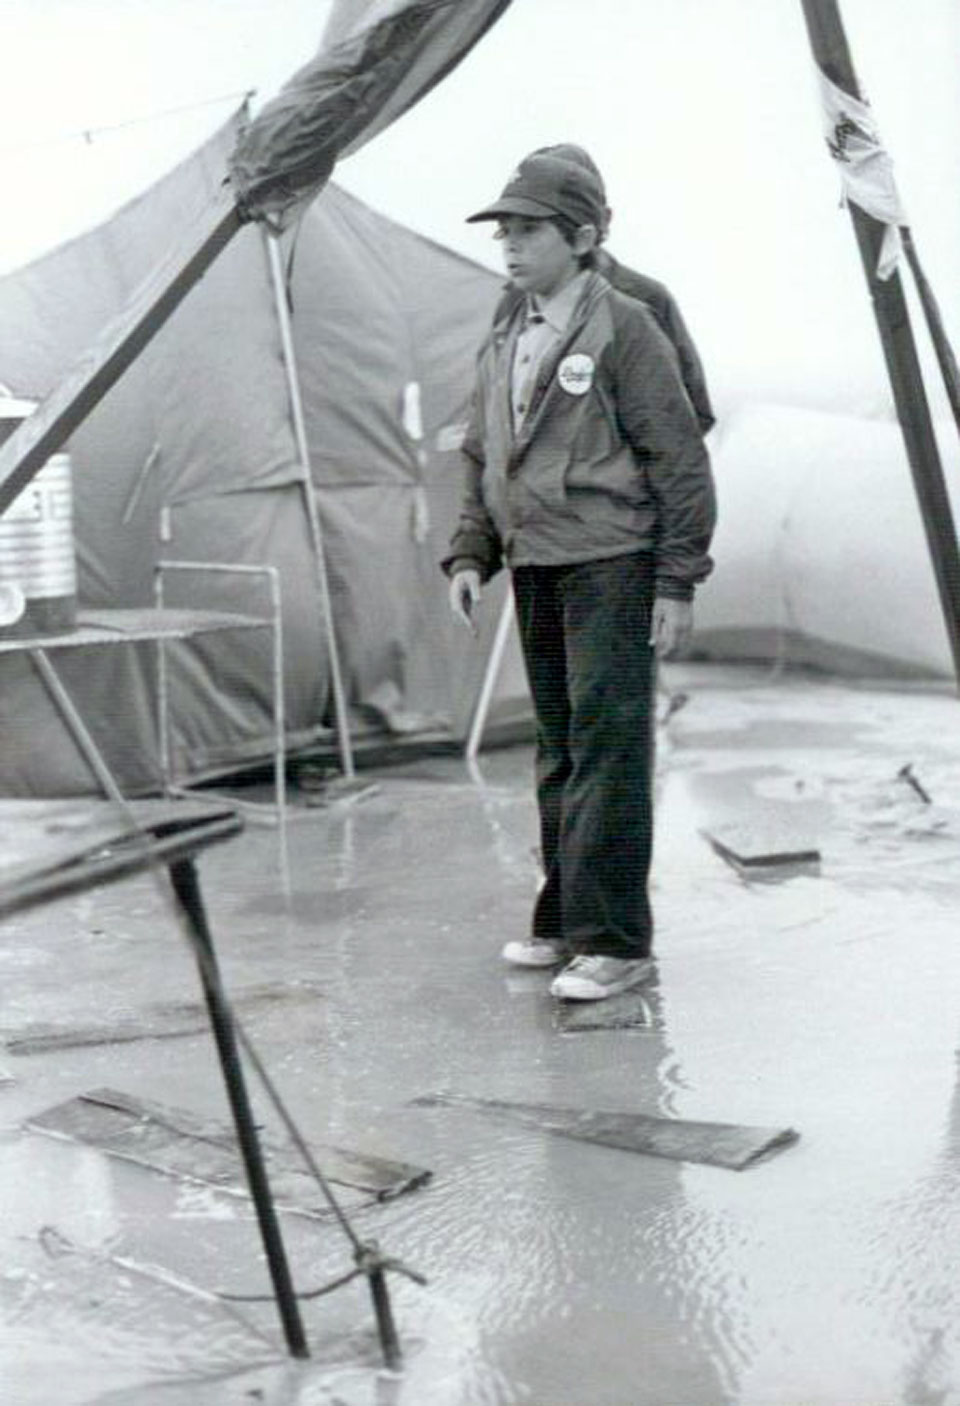 Scouts Wetter - Ras Tanura Boy Scouts at a very wet, longterm camp at Half Moon Bay - circa 1983.